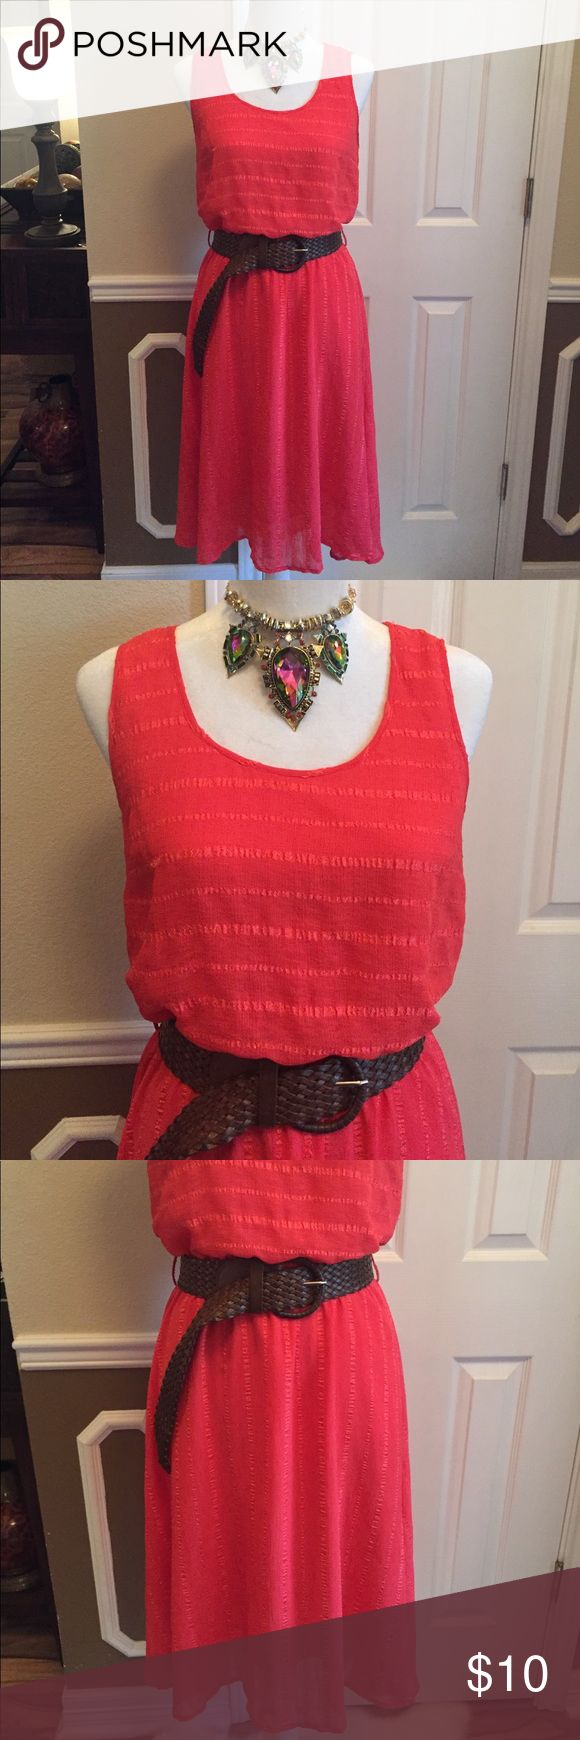 New listing! Beautiful coral sundress! Size medium super cute coral sundress with braided belt; belt is made to look worn! Dress has normal wear as associated with washing Dresses Midi